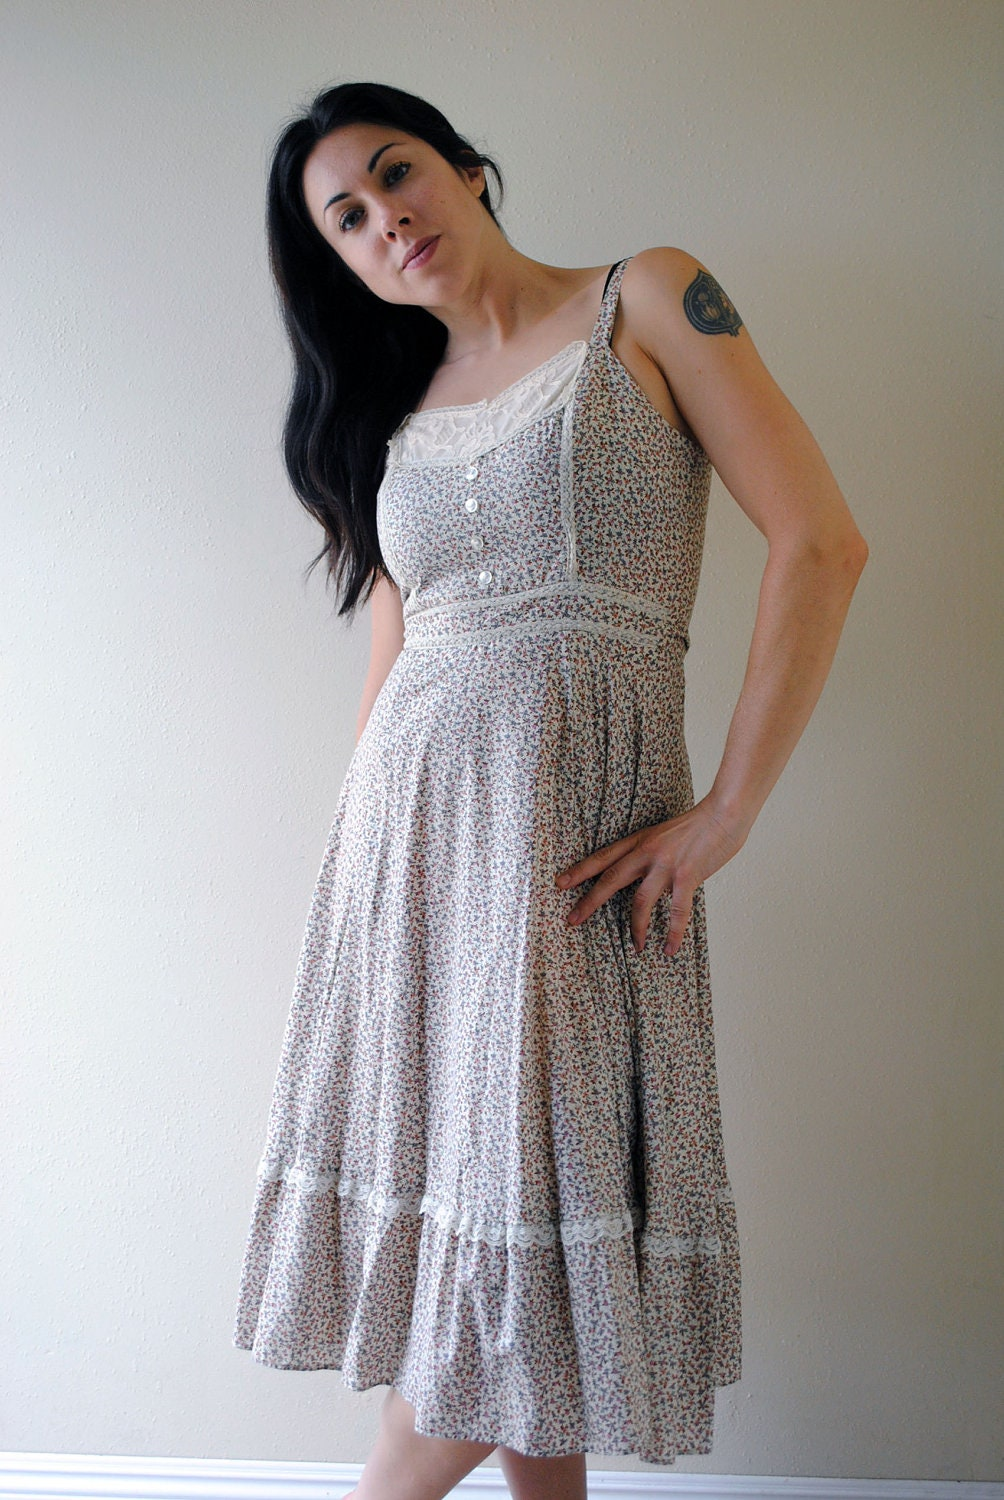 Ghost Vintage Clothing eBay Stores